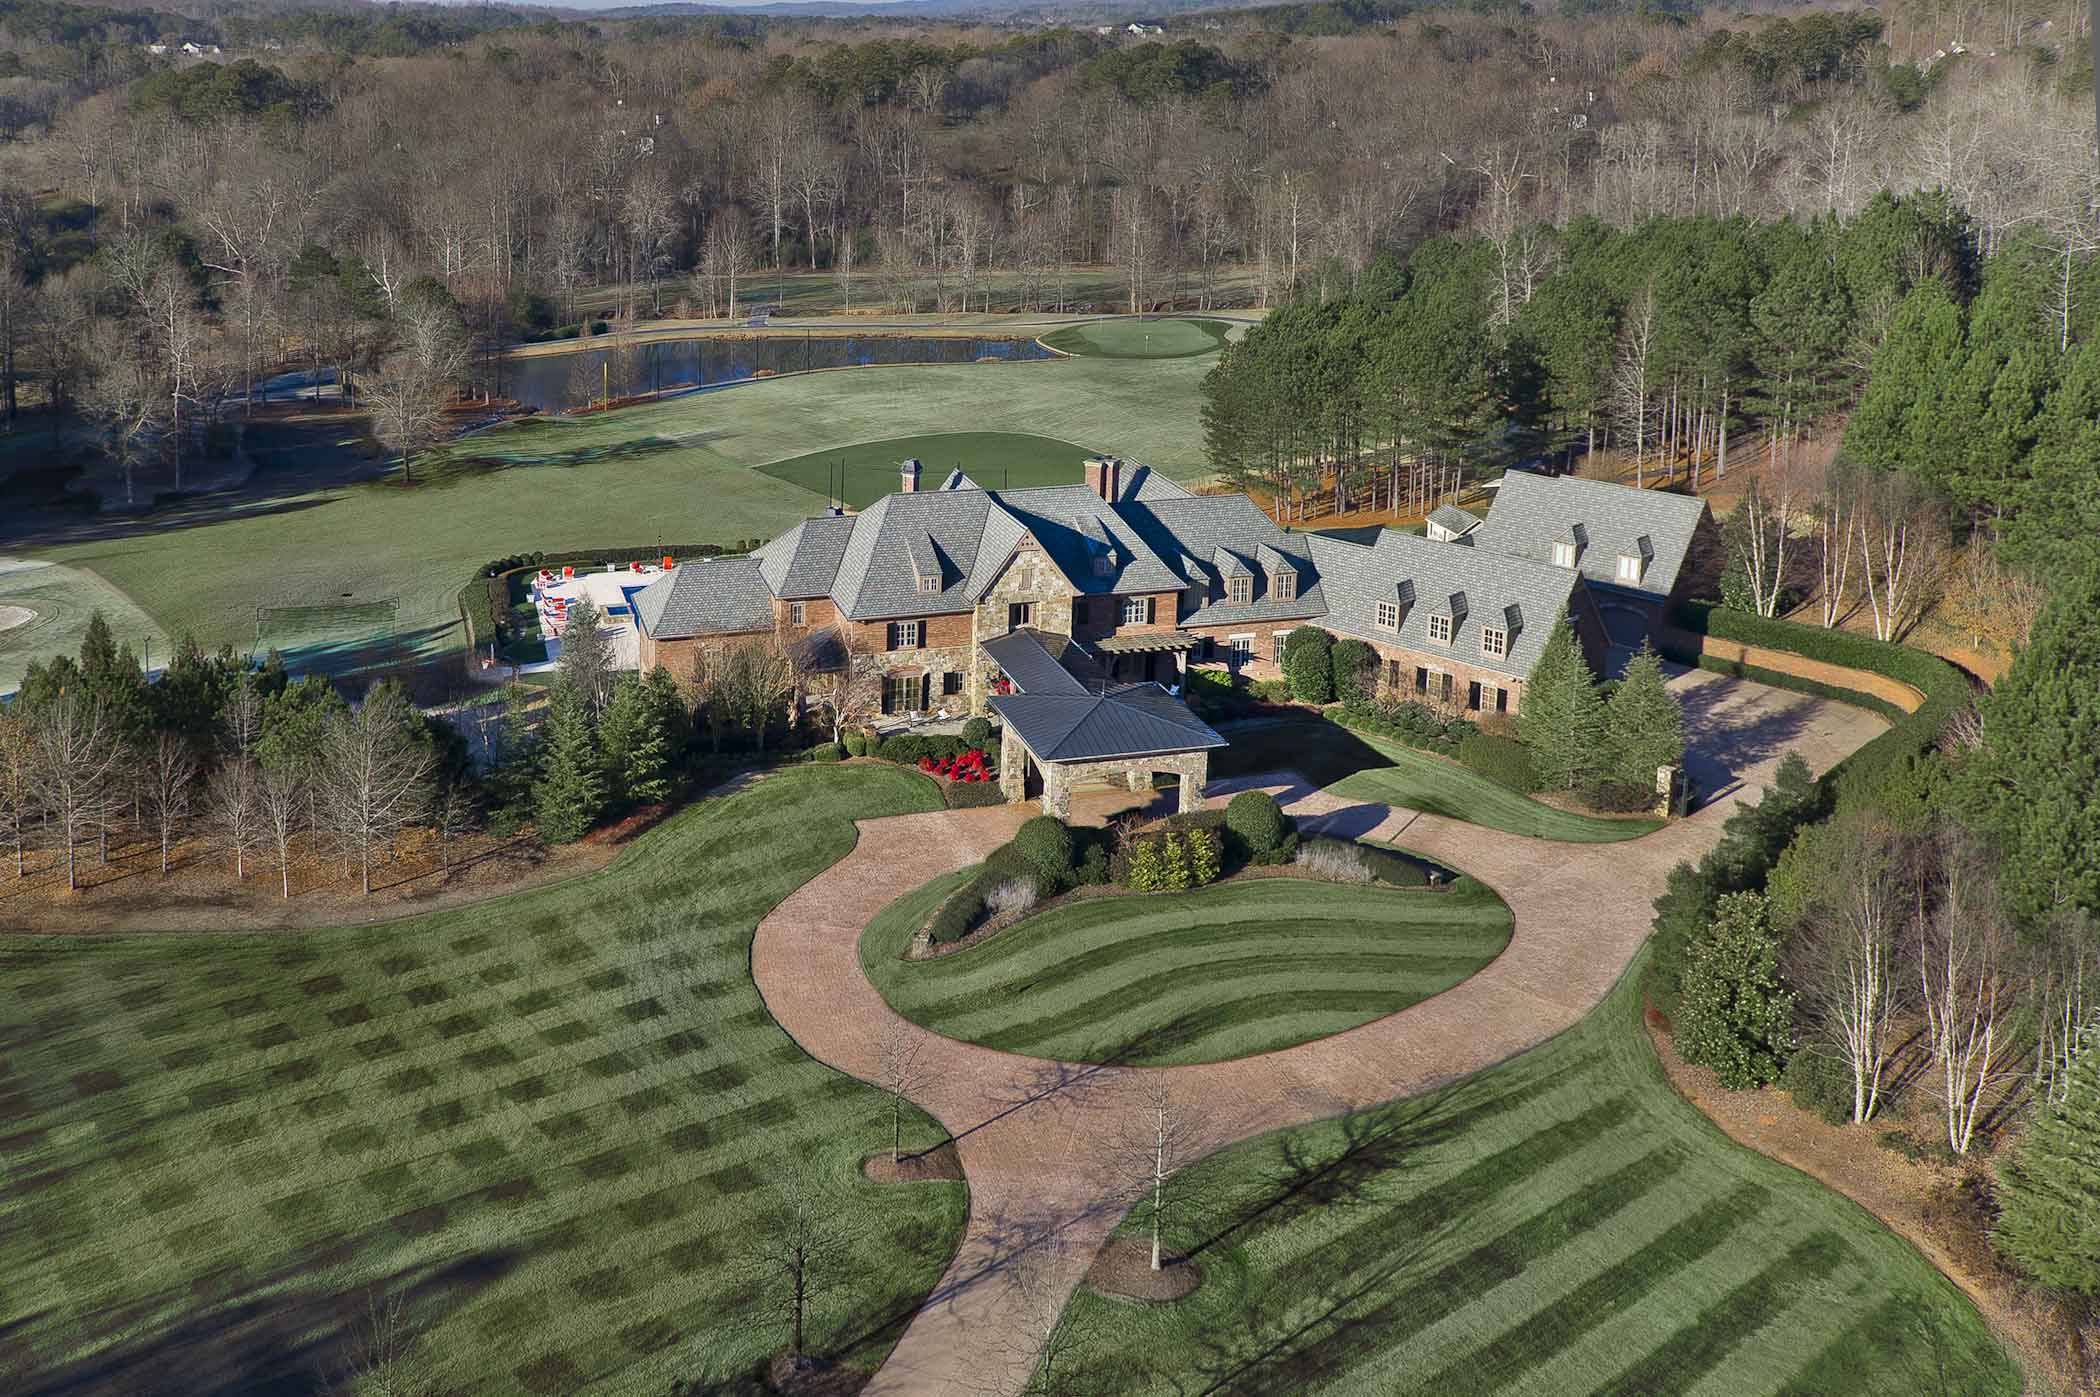 Play on your own baseball field designed by Braves Pitcher John Smoltz